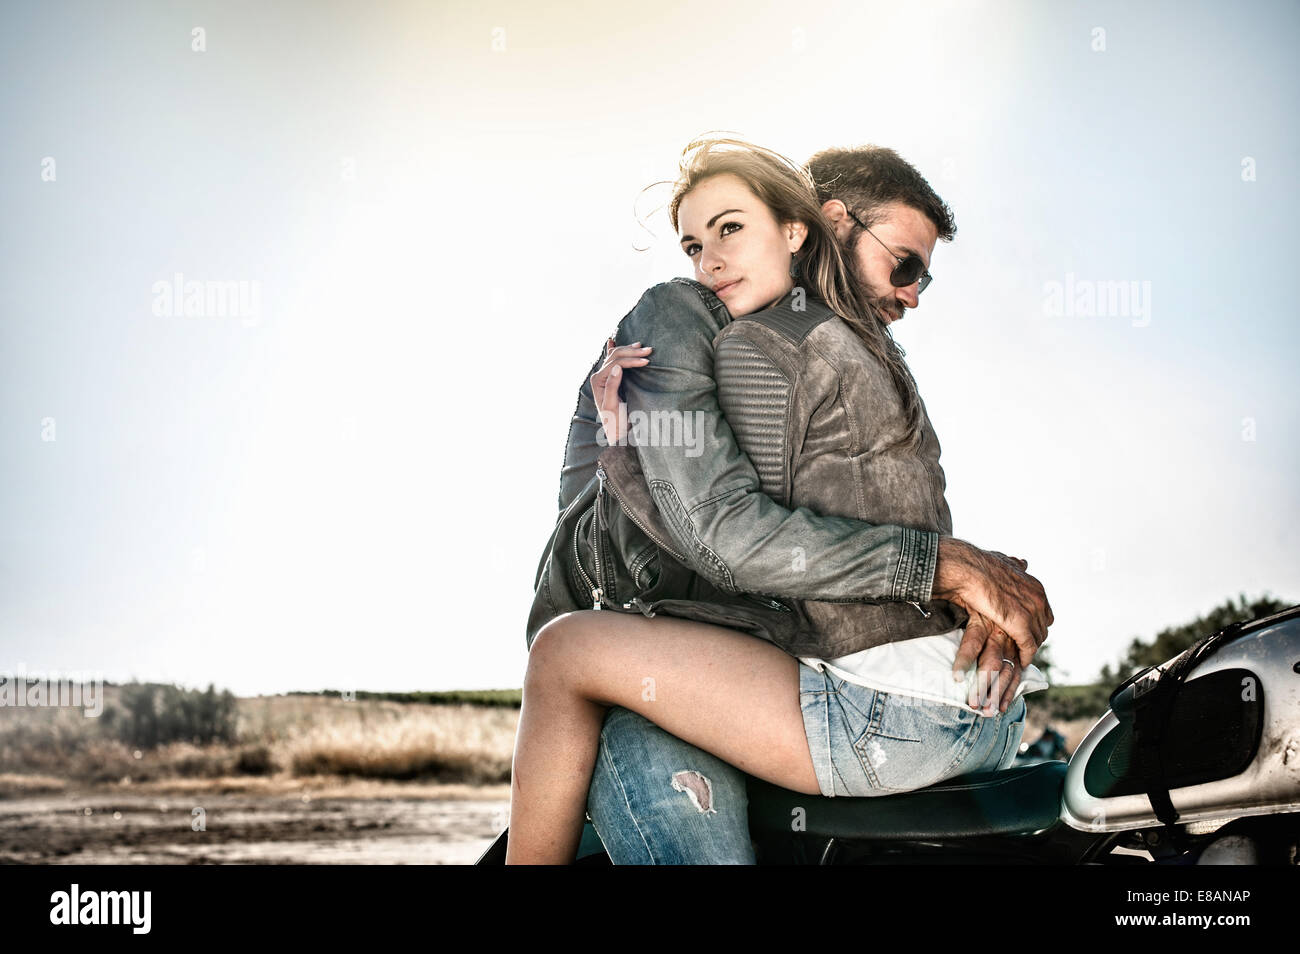 Young couple hugging and straddling motorcycle on arid plain, Cagliari, Sardinia, Italy - Stock Image